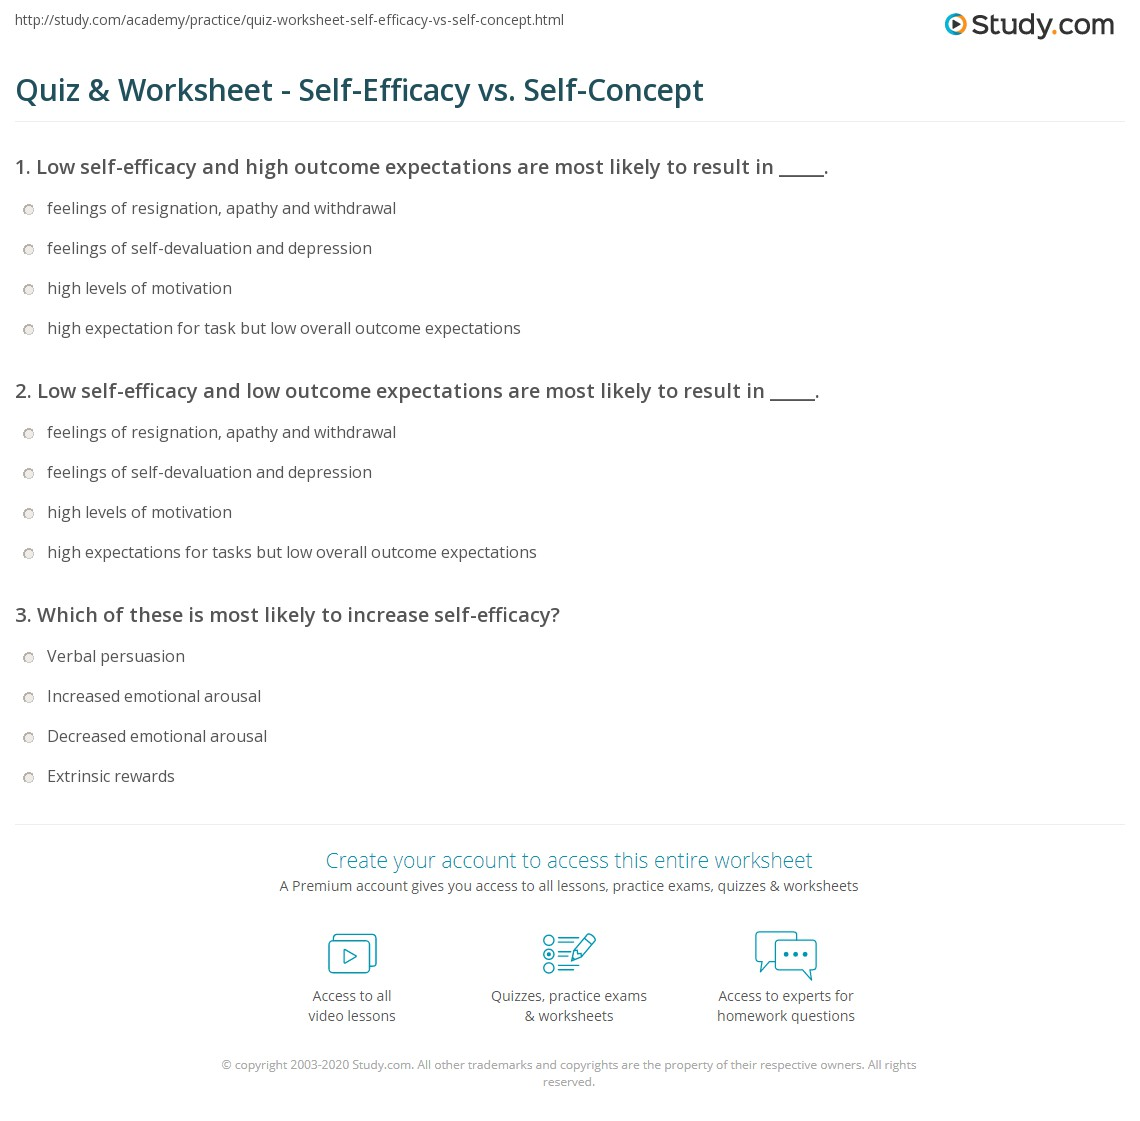 Low self-efficacy and low outcome expectations are most likely to ...